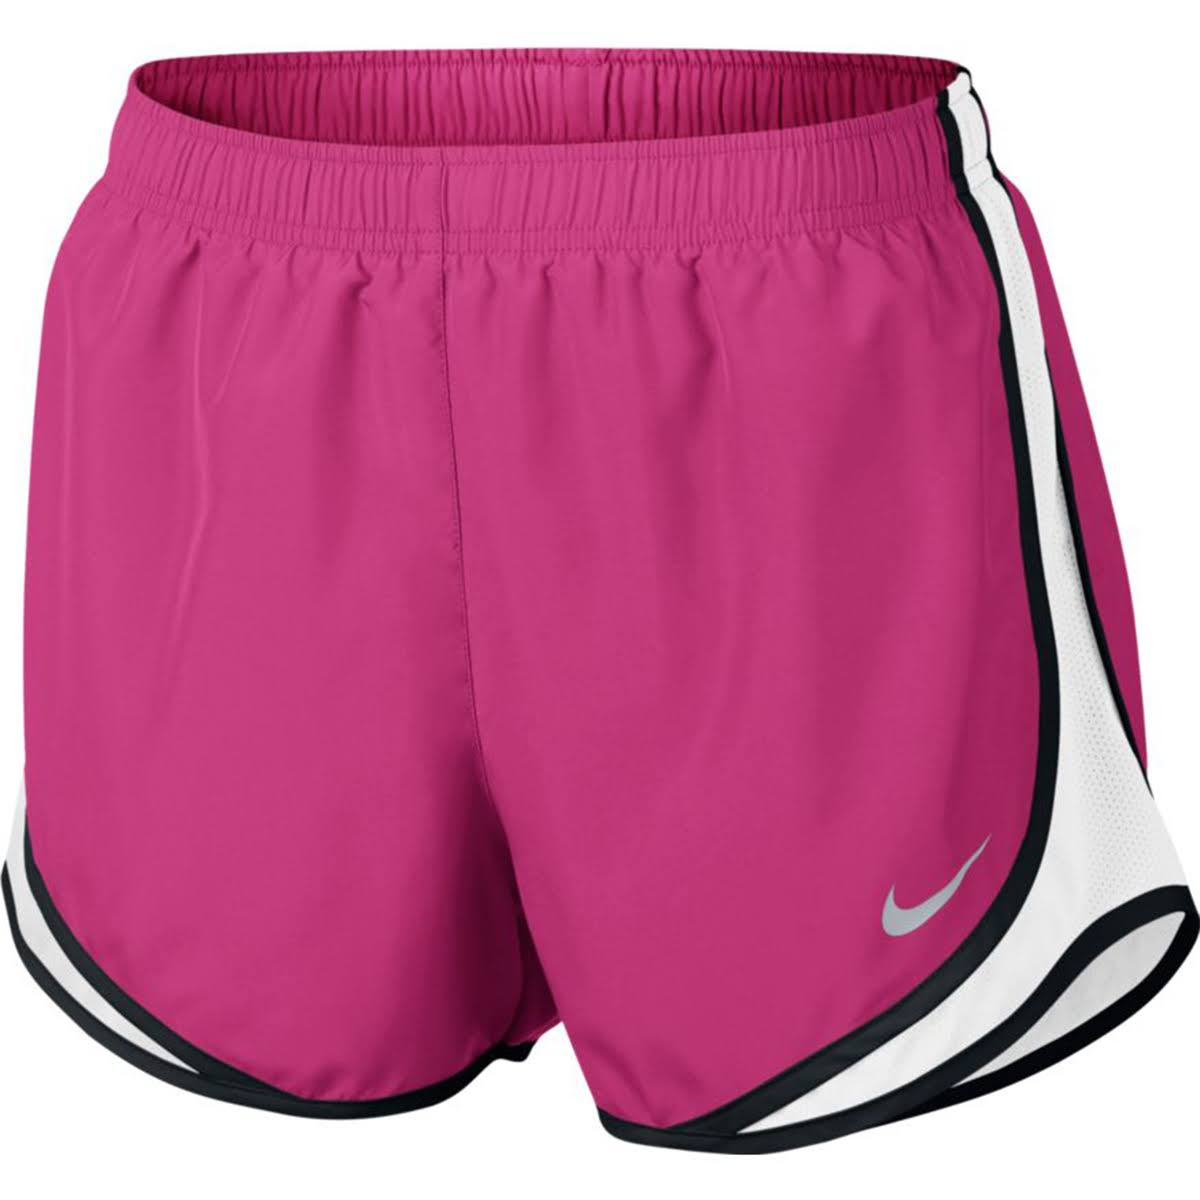 Nike Women's Dry Tempo Shorts - Pink/White/Black/Wolf Grey, Large